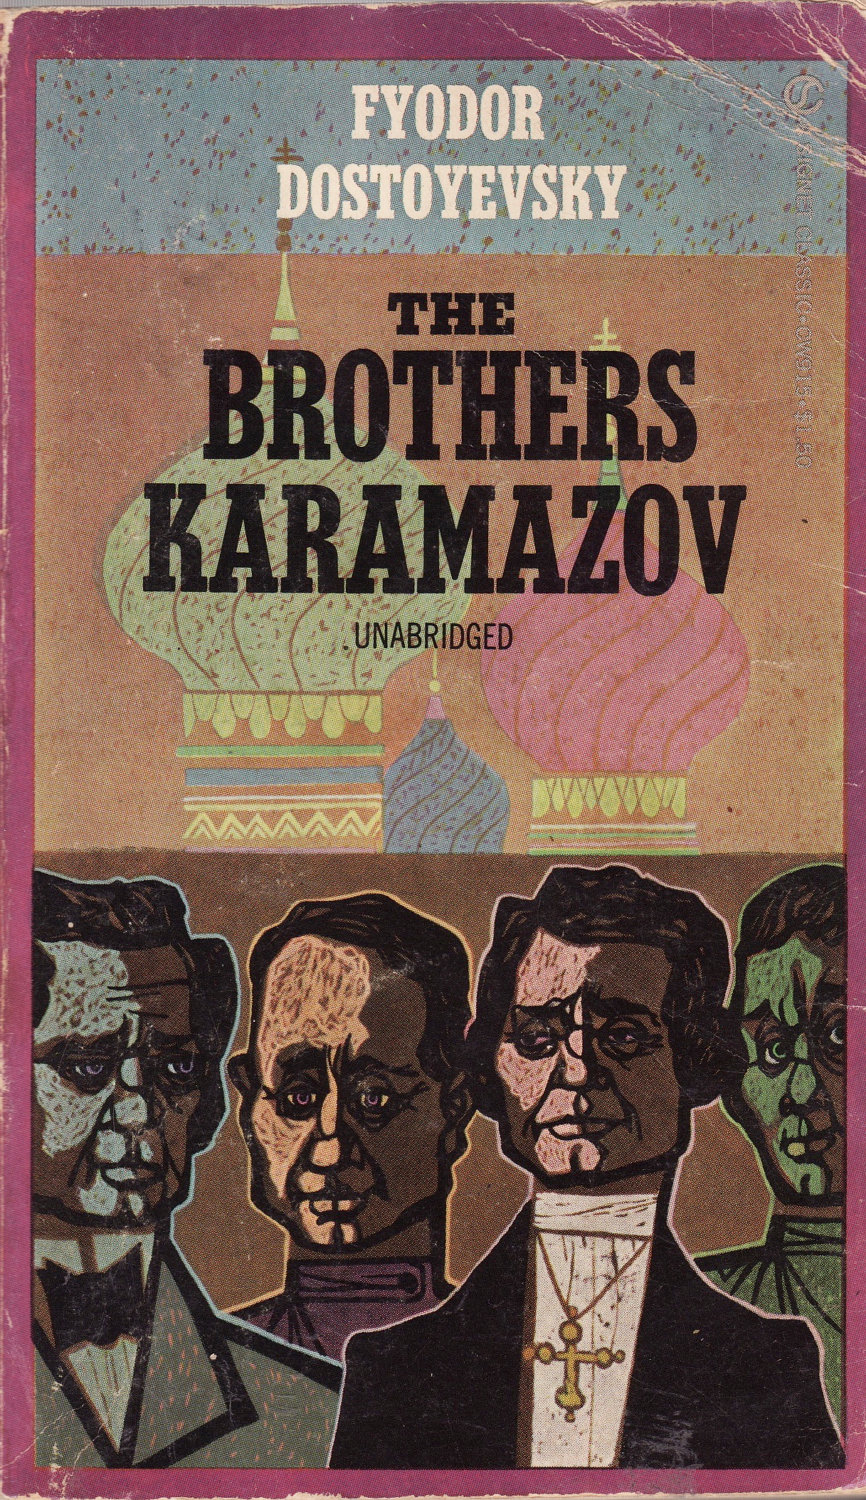 essays on brothers karamazov Professional essays on the brothers karamazov authoritative academic resources for essays, homework and school projects on the brothers karamazov.